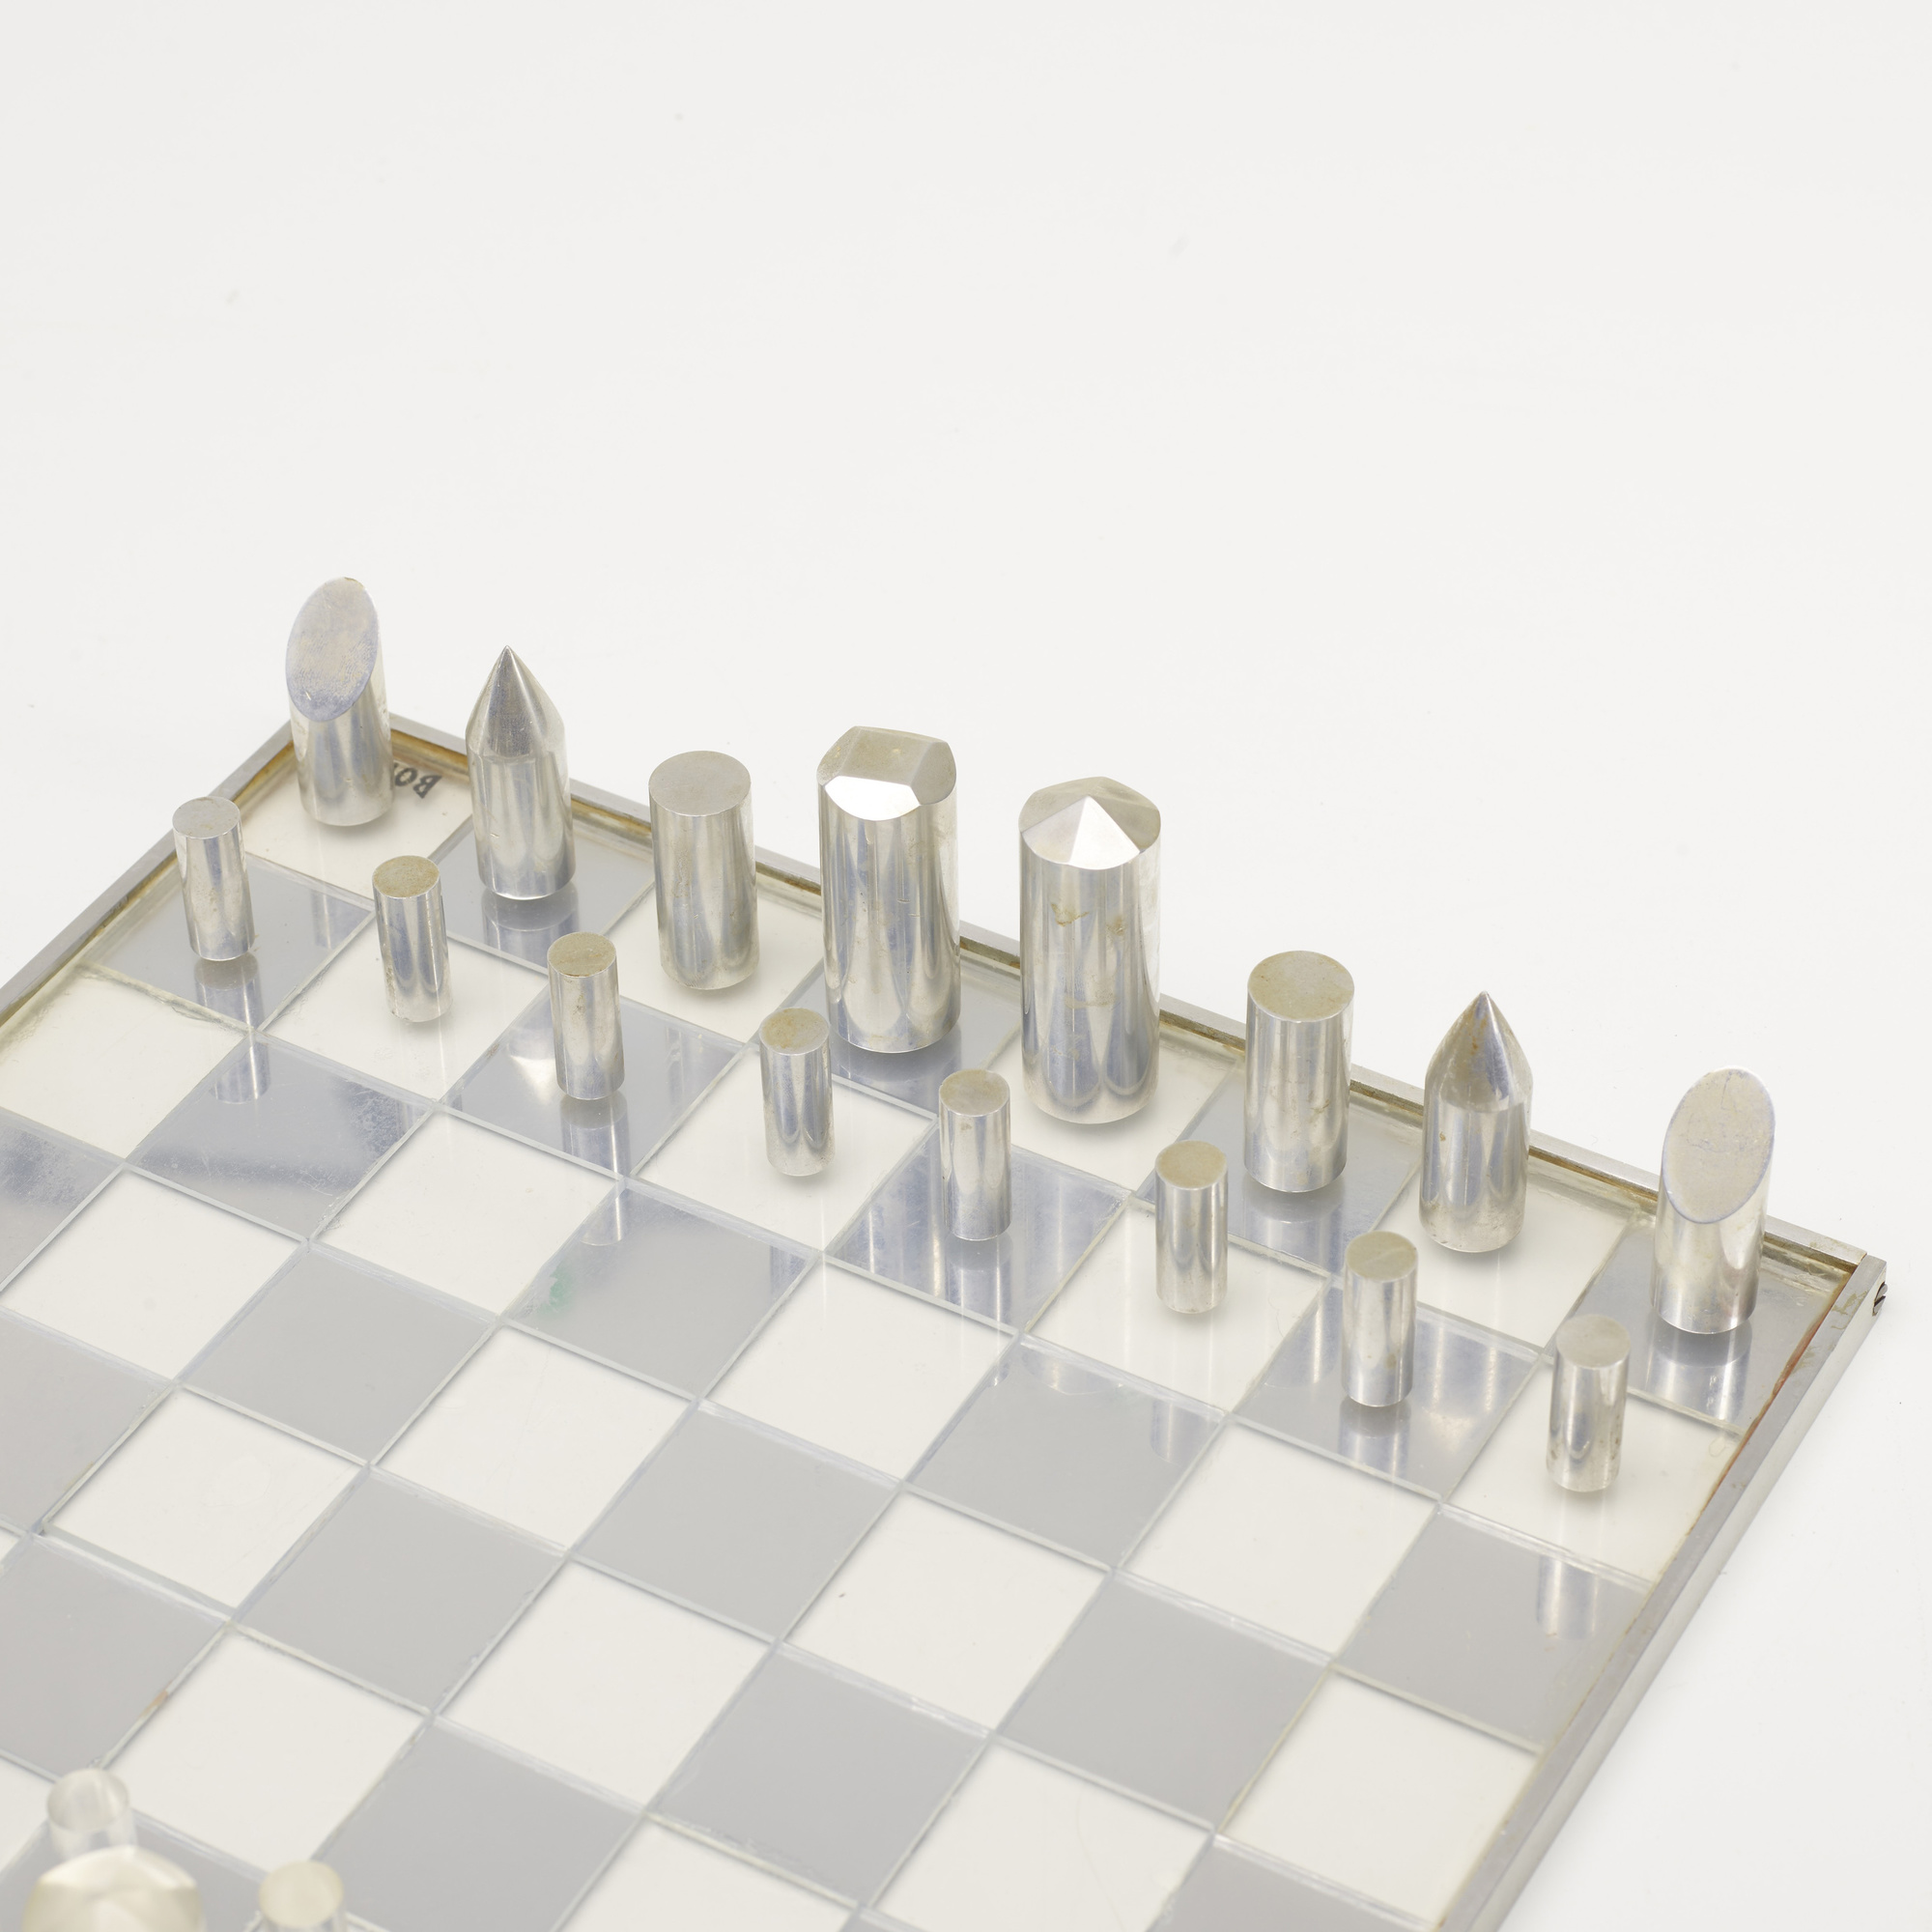 609: Modernist / chess set (2 of 2)